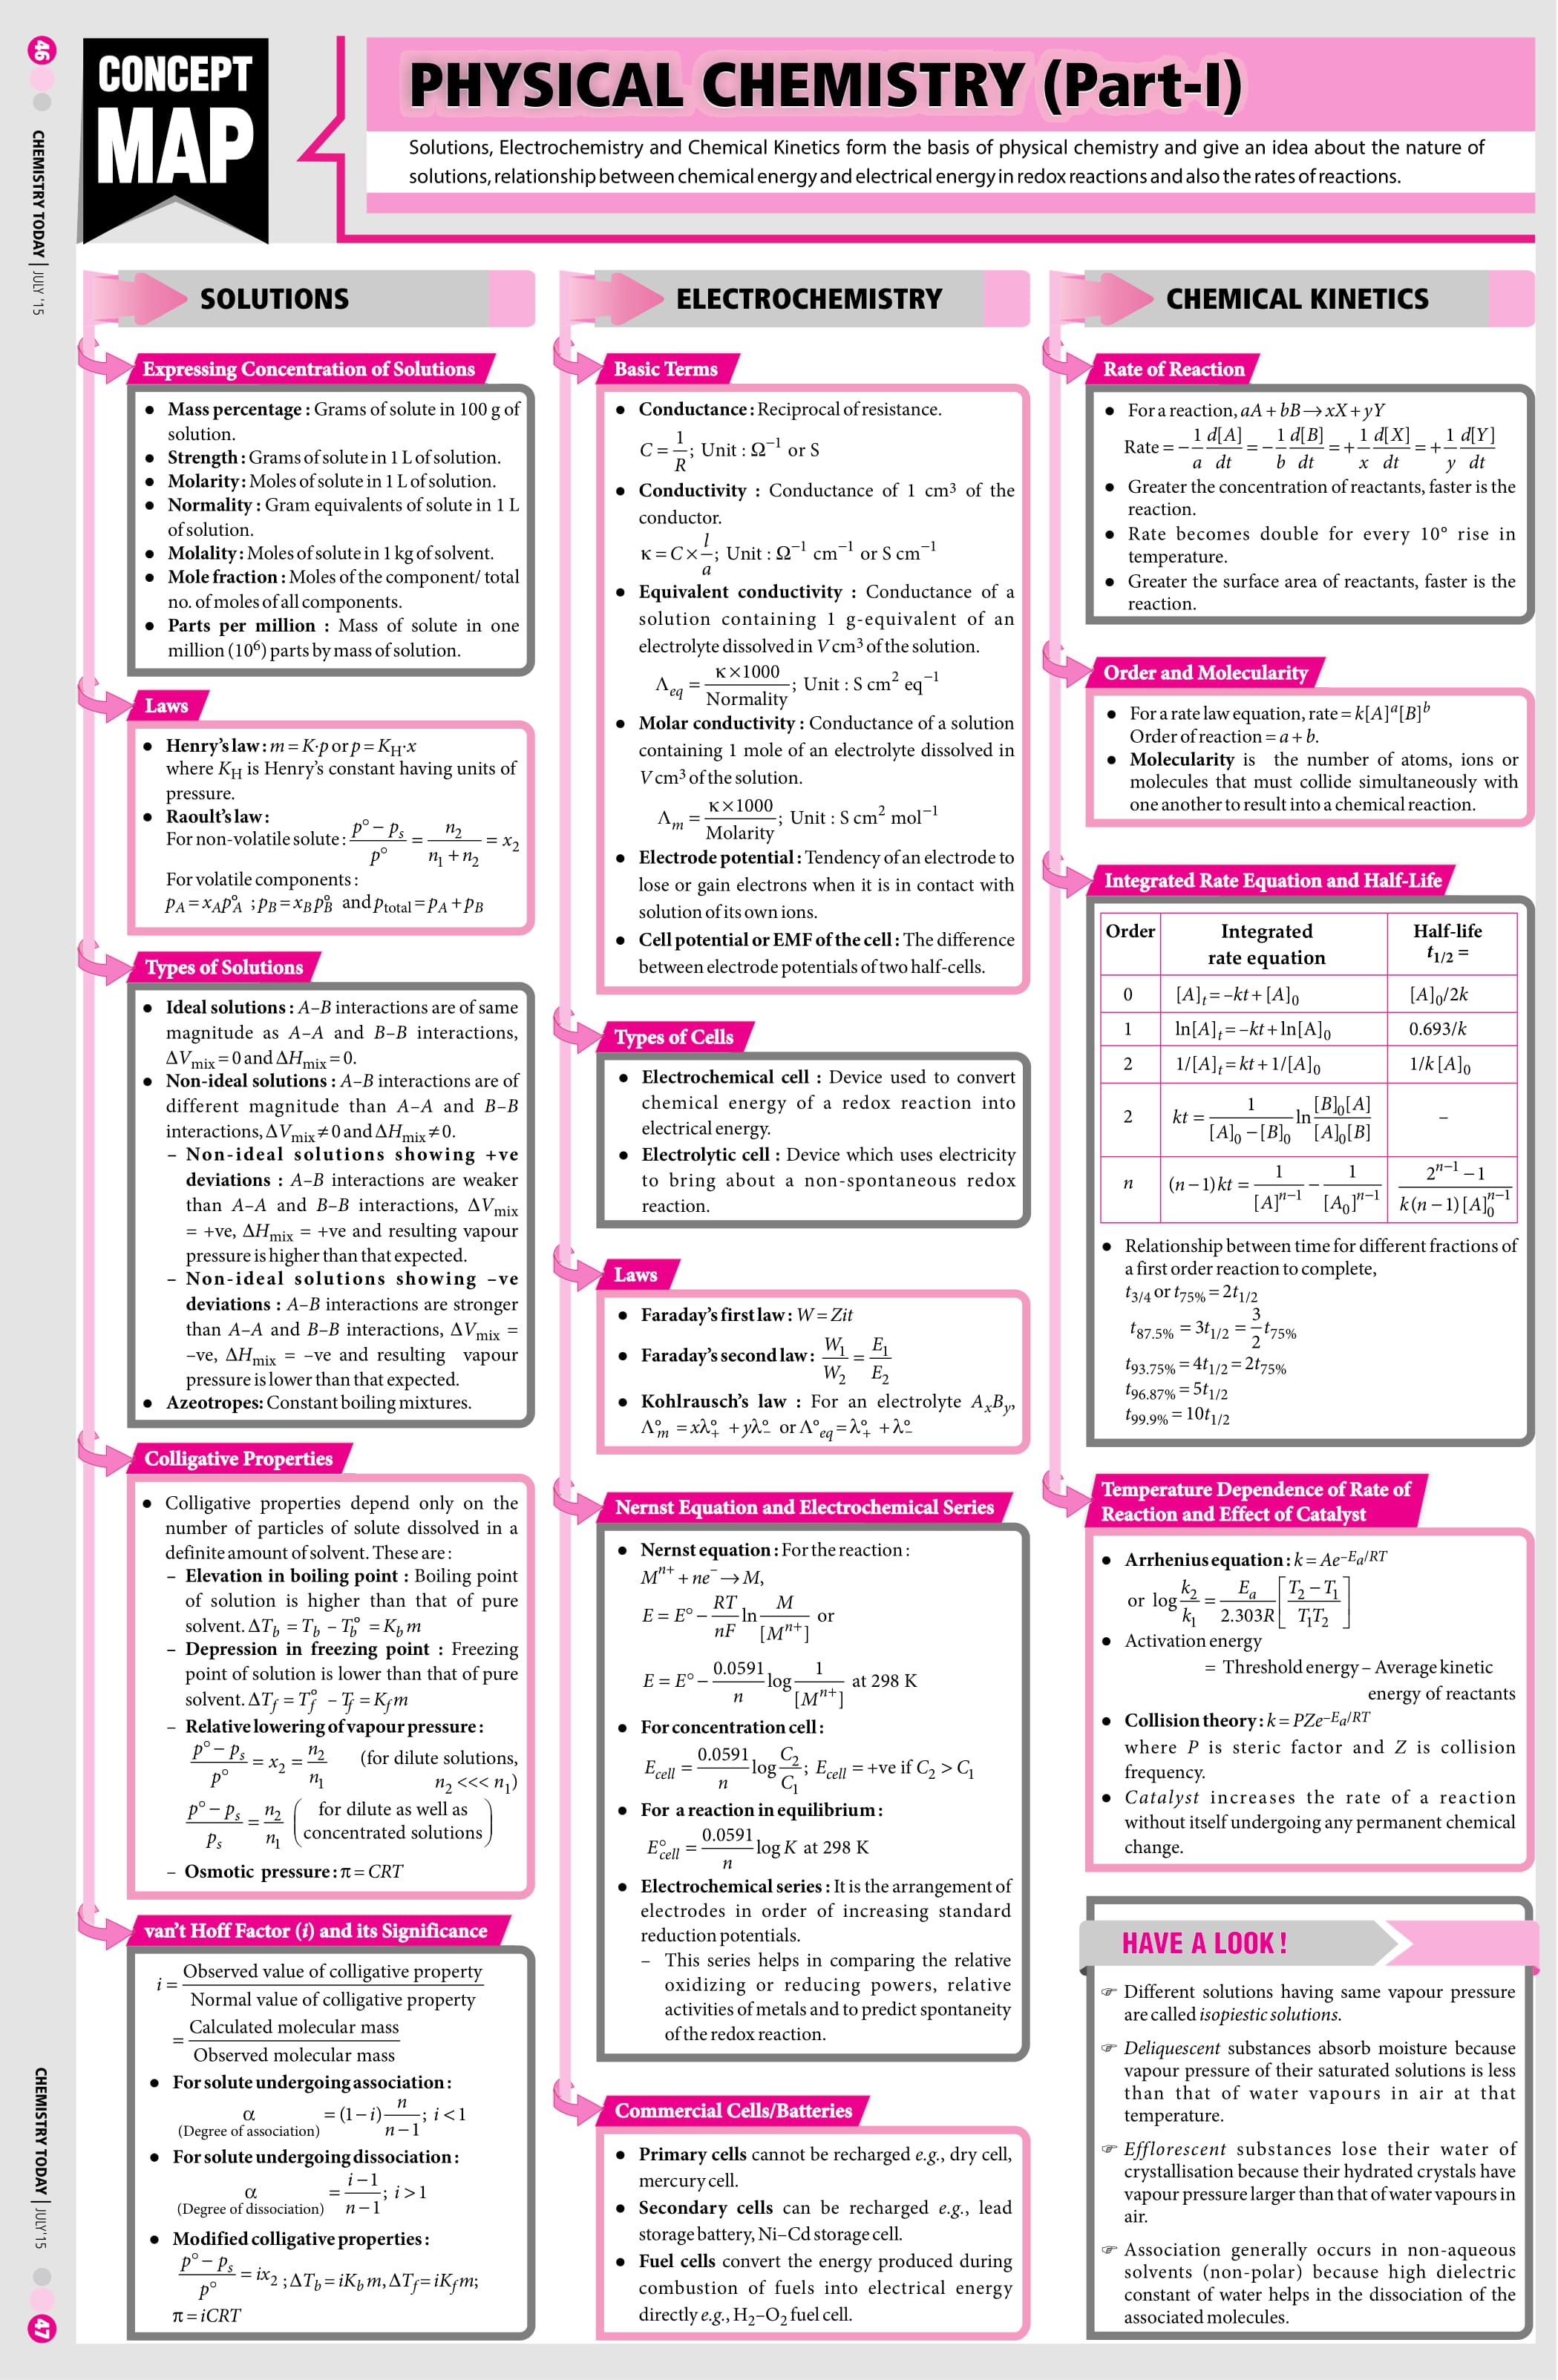 Physical Chemistry Part 1